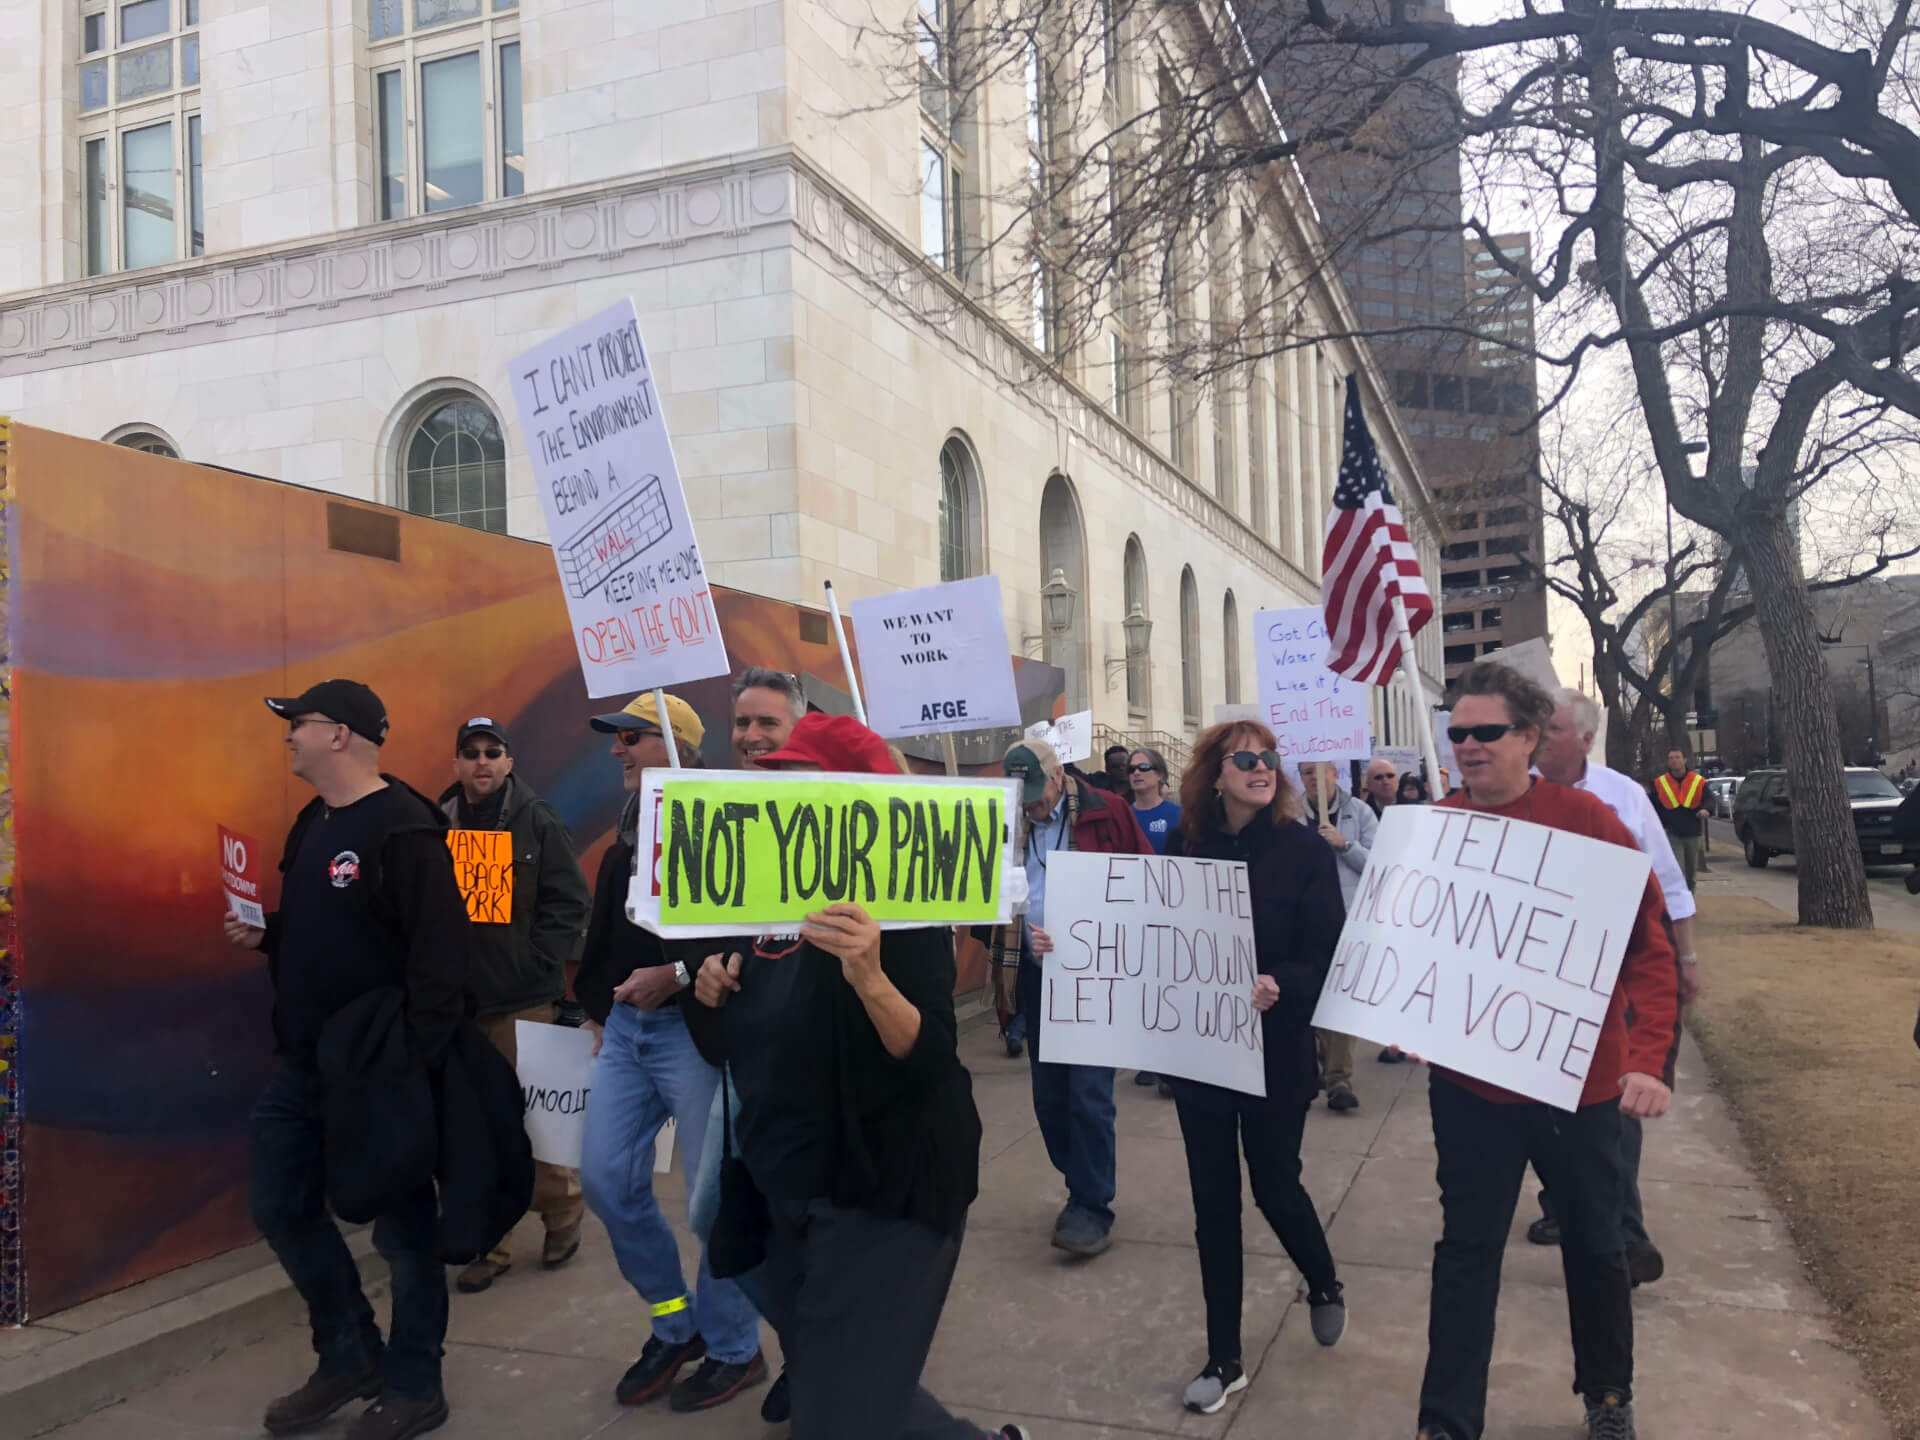 Federal Workers In Denver Protest Shutdown: 'Do Your Job So